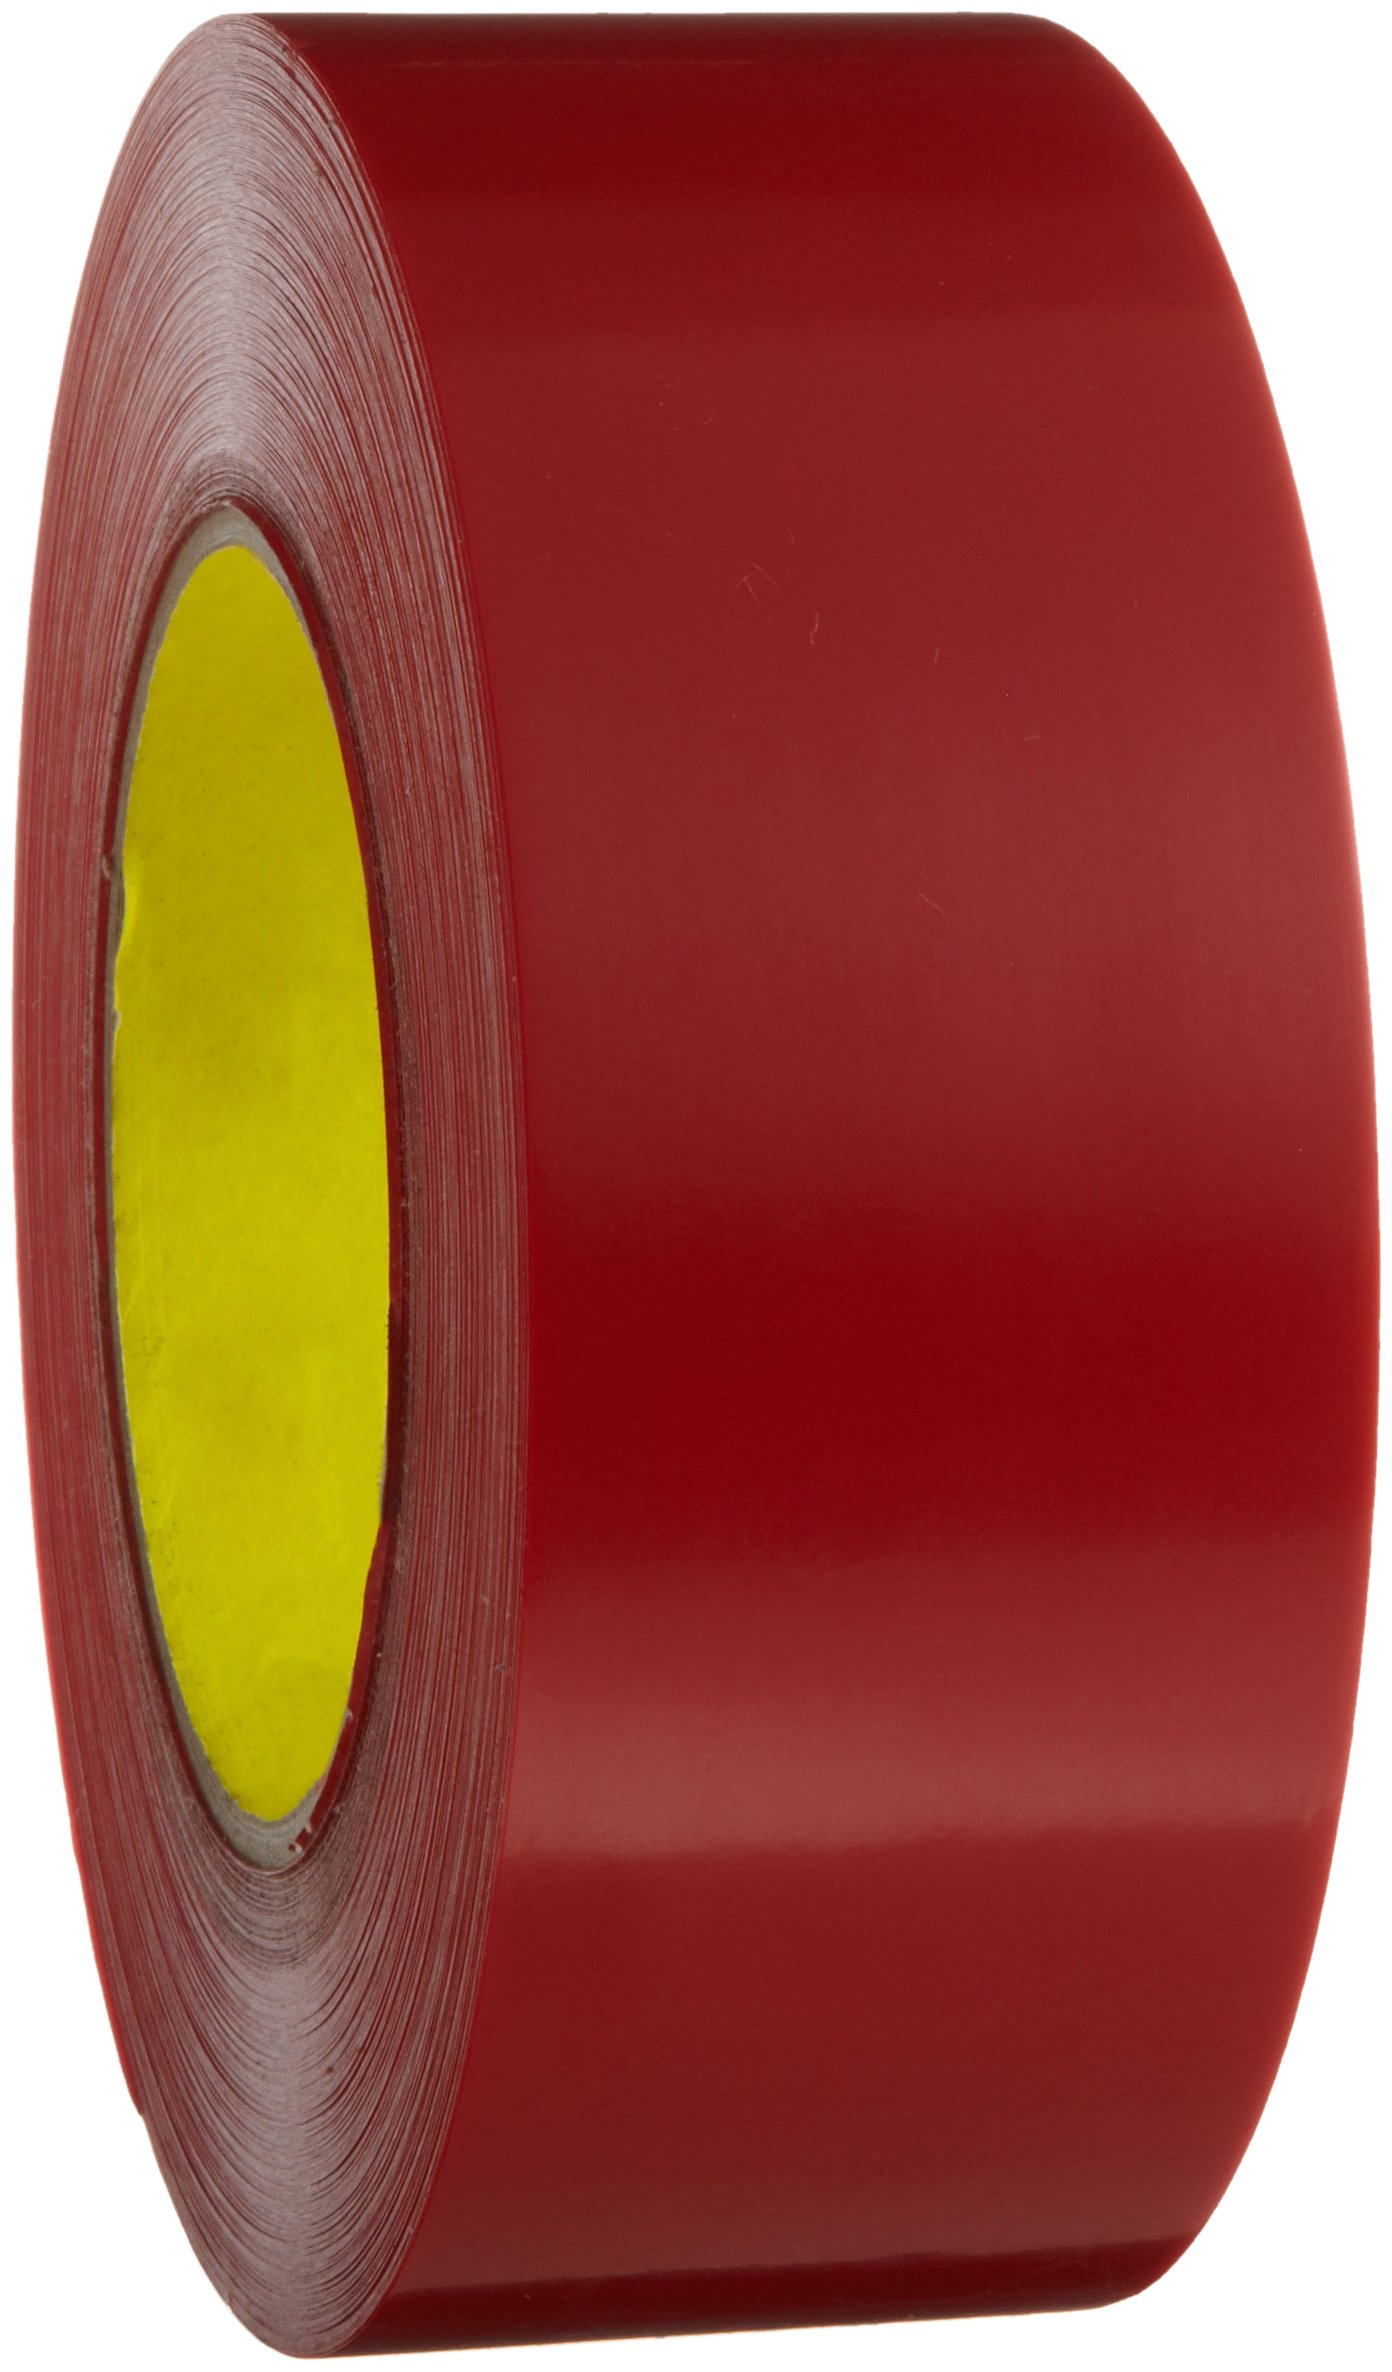 3M Outdoor Masking Poly Tape 5903 Red, 48 mm x 54.8 m (Pack of 1) by 3M (Image #1)